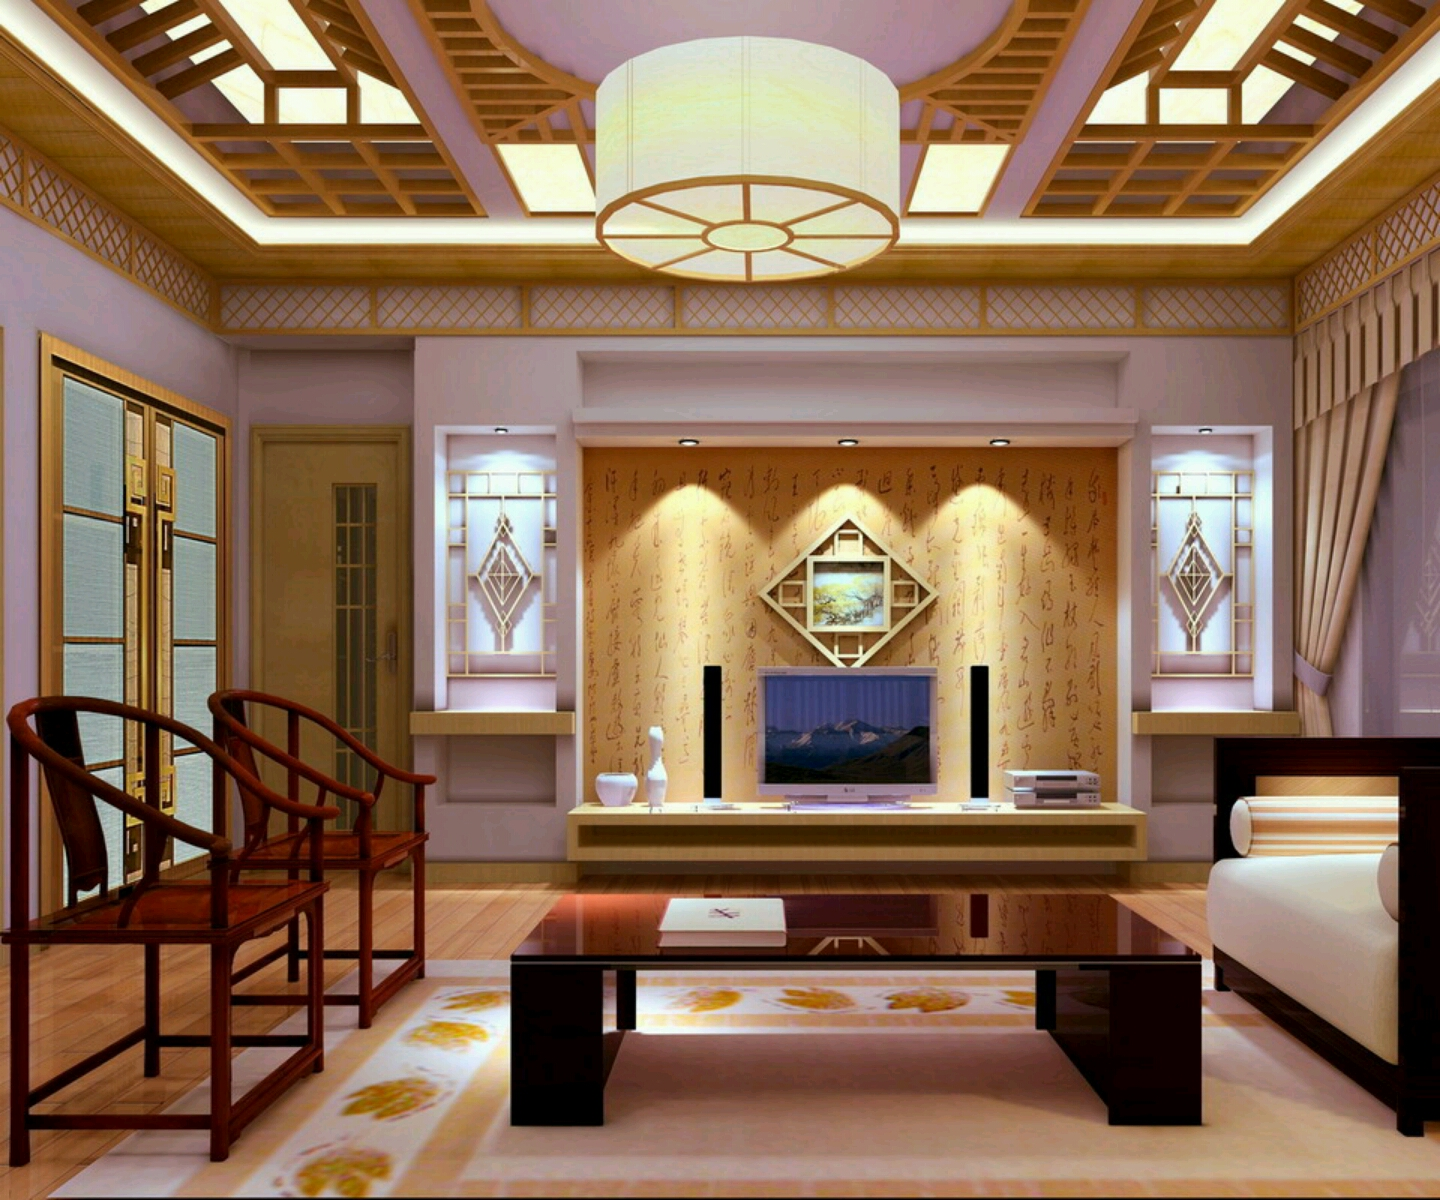 New home designs latest homes interior designs studyrooms for Home interior ideas